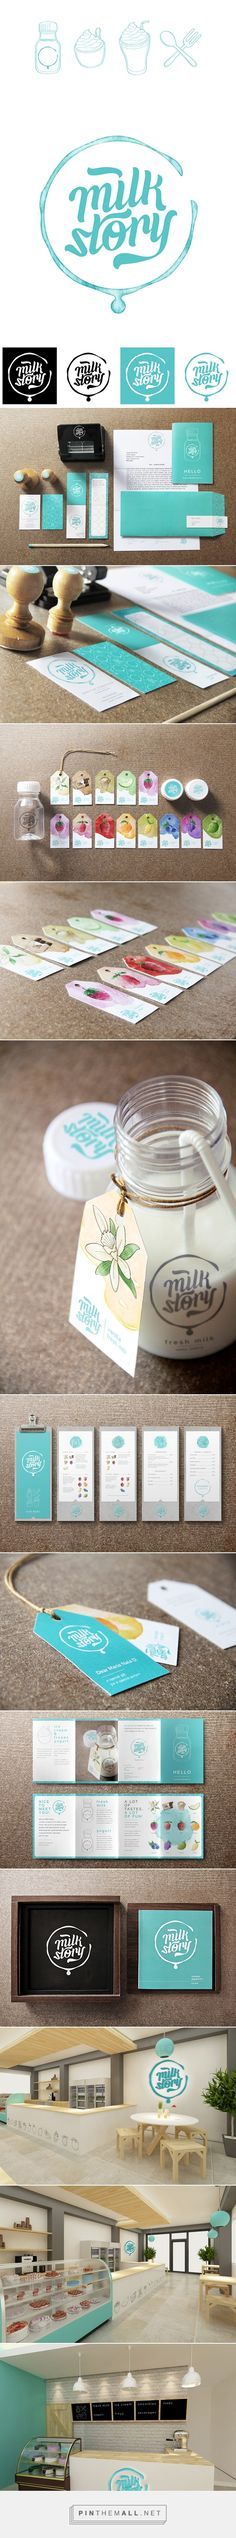 Milk Story Brand Identity on Behance - created on Corporate Design, Brand Identity Design, Graphic Design Branding, Web Design, Brand Packaging, Packaging Design, Portfolio Design Grafico, Vintage Logo, Design Poster